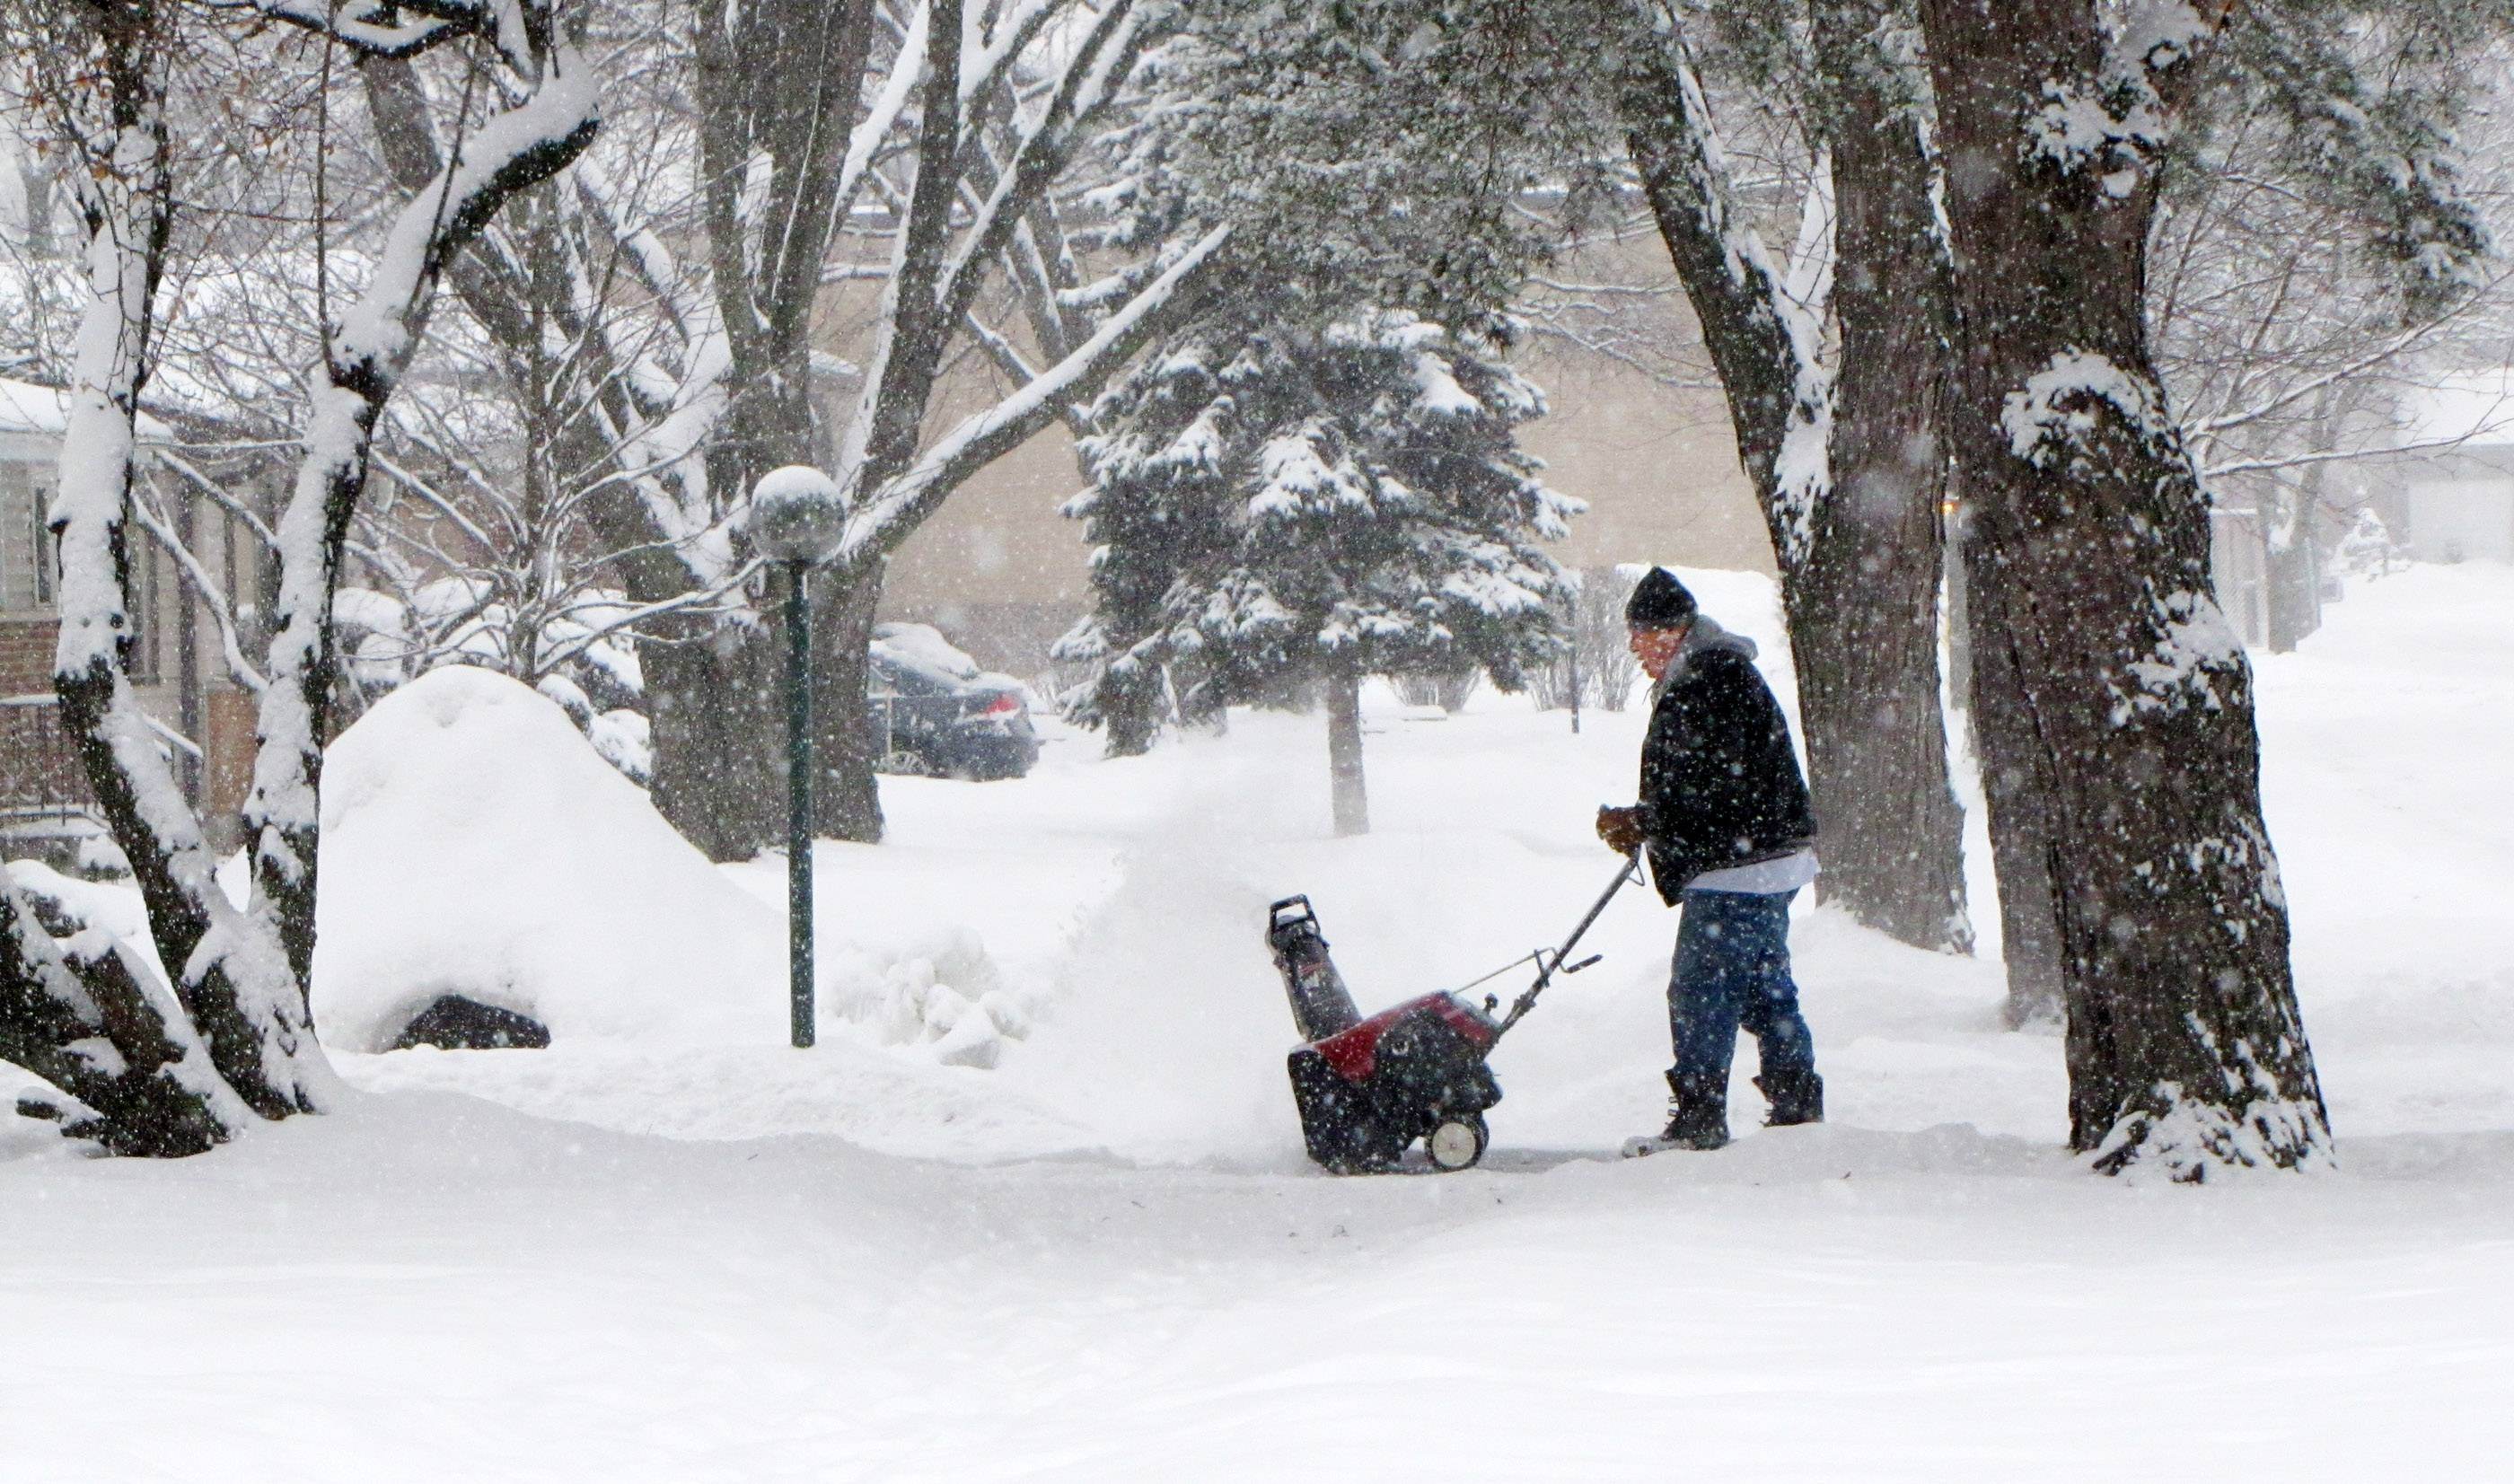 This winter, DuPage volunteers are helping weather professionals track snowfall at more than 60 points across the county. A Lisle observer has counted 37 snowy days since Dec. 1.